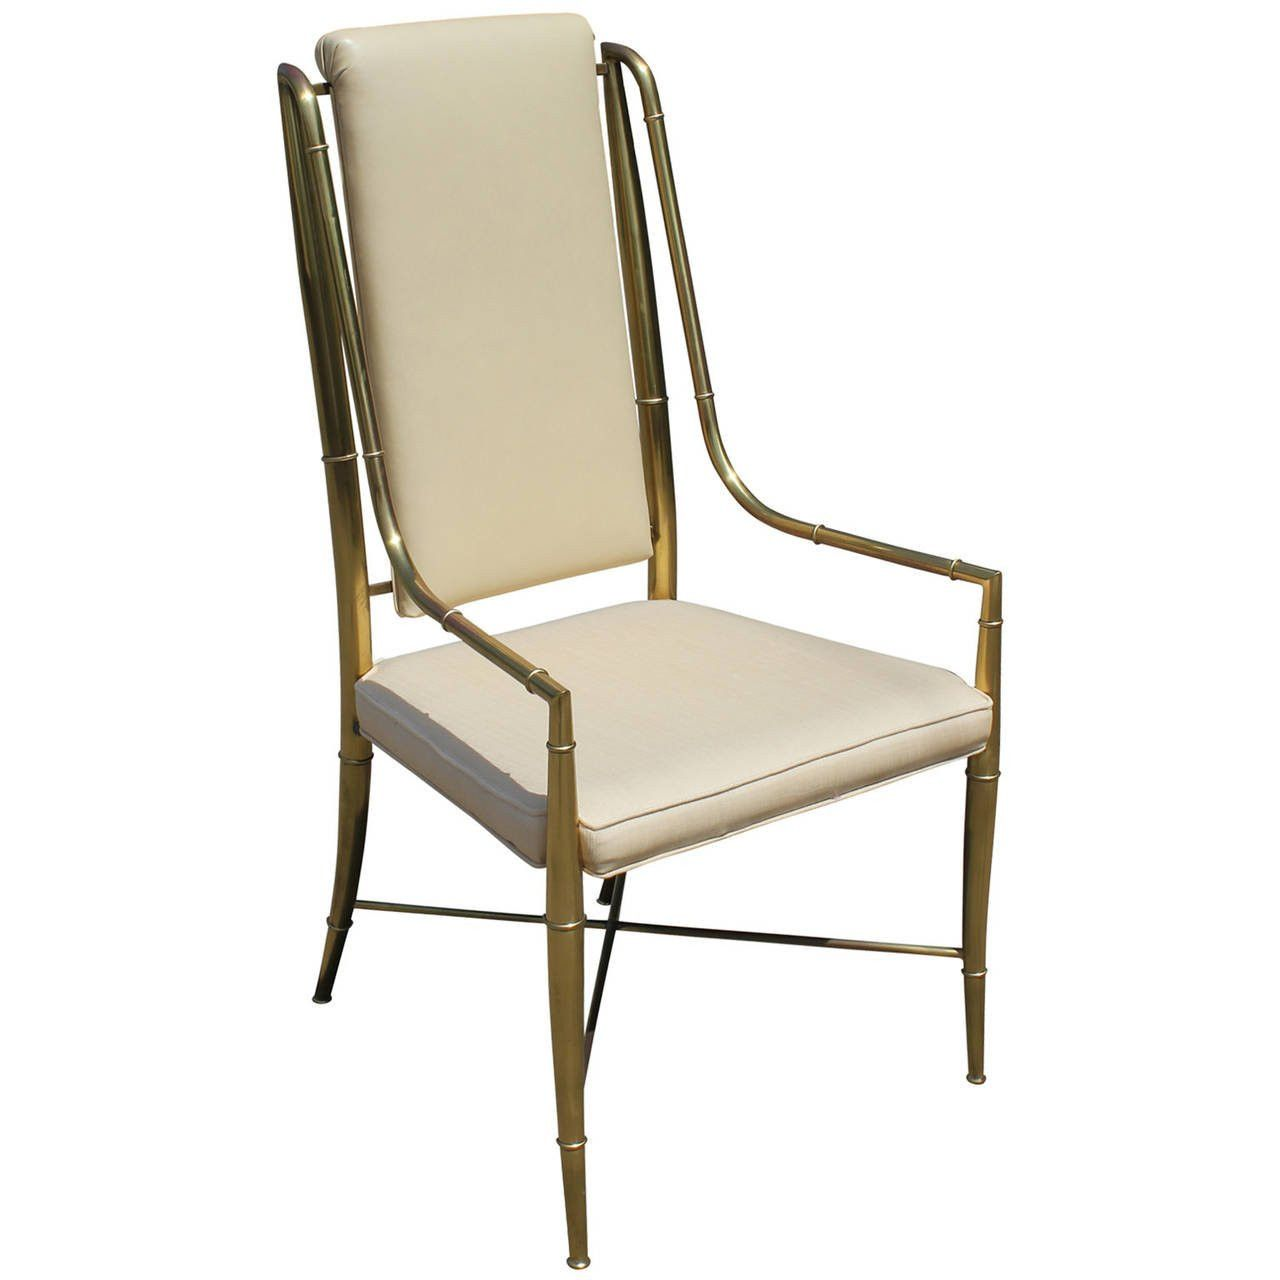 bamboo modern furniture. 50+ Bamboo Dining Chairs - Contemporary Modern Furniture Check More At Http://